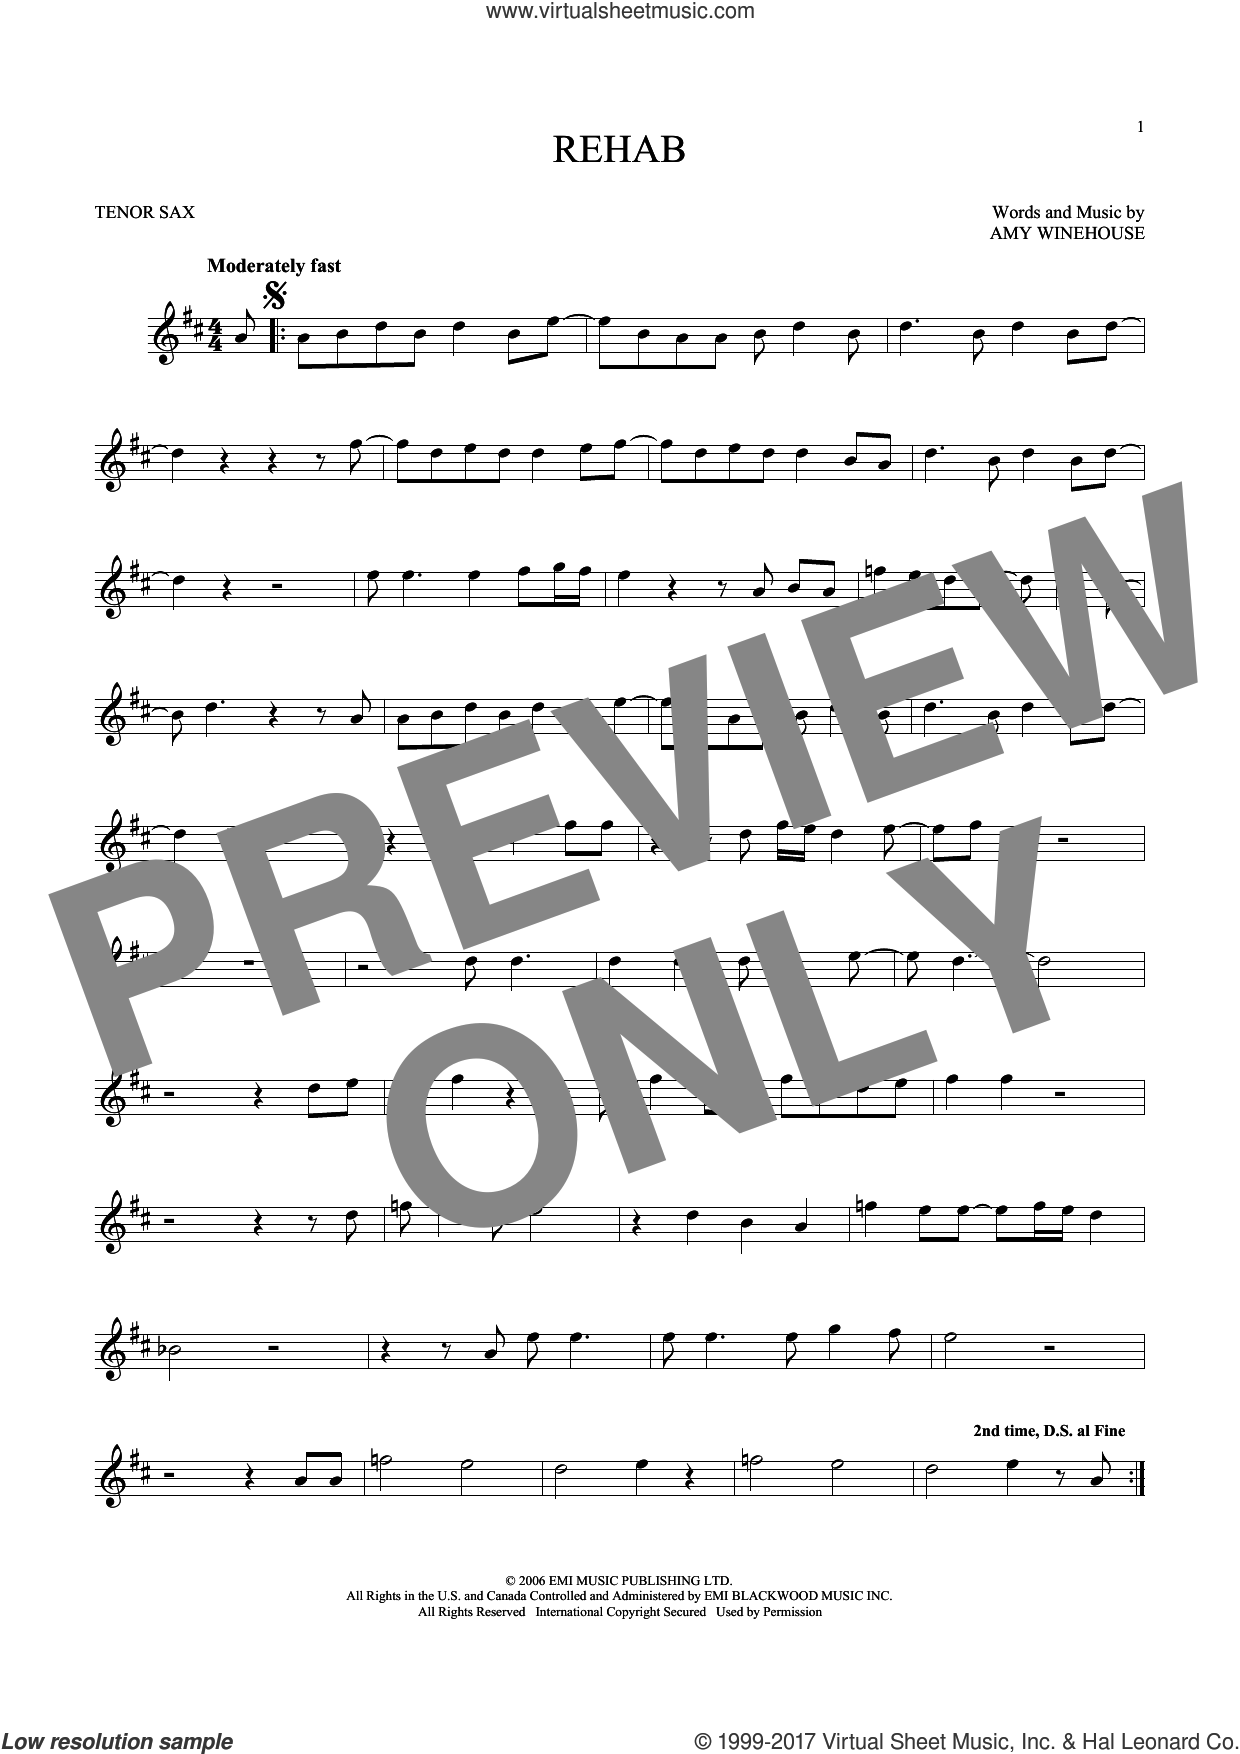 Rehab sheet music for tenor saxophone solo by Amy Winehouse, intermediate skill level